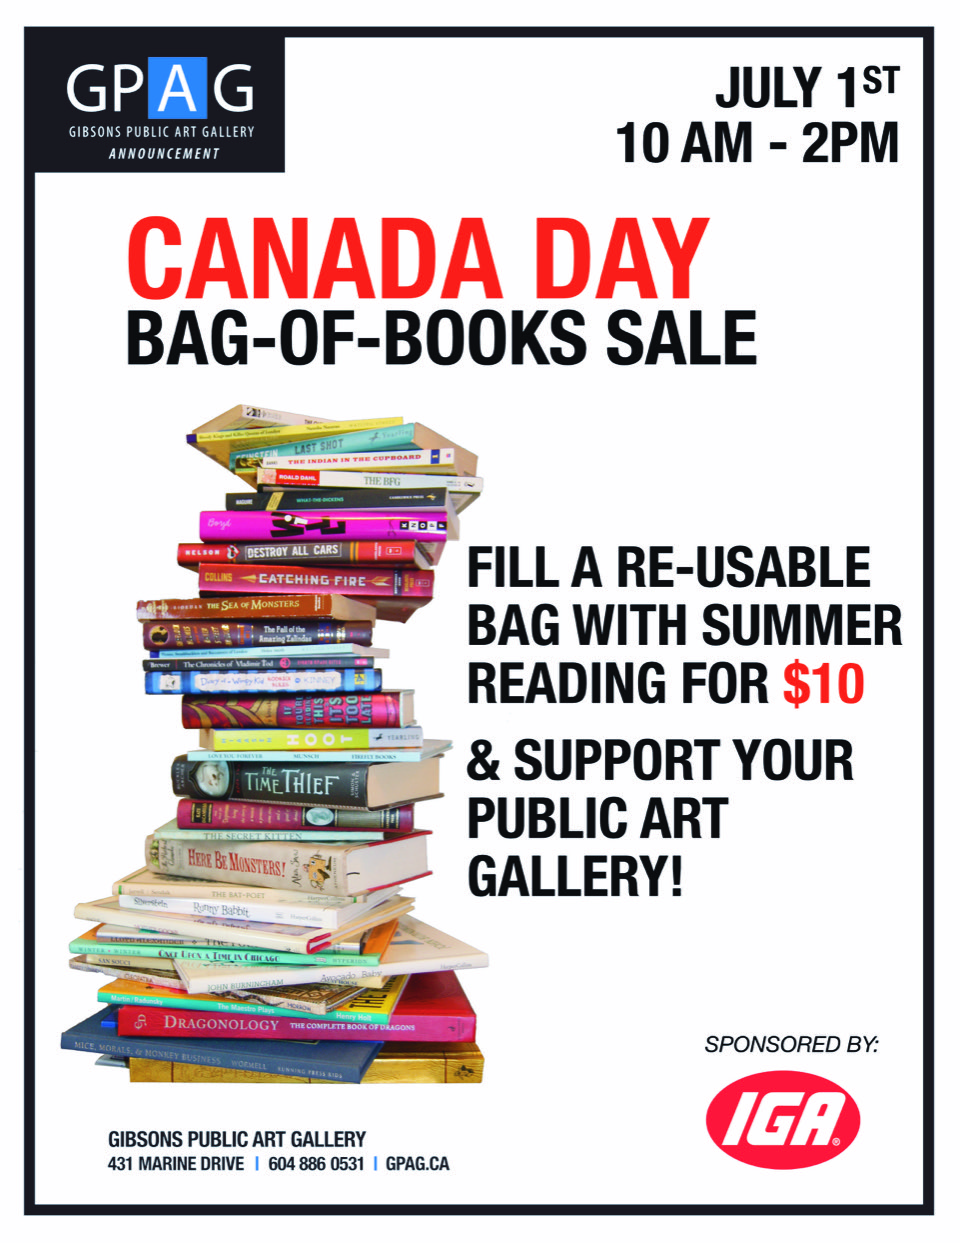 Canada Day Bag-of-Books Sale